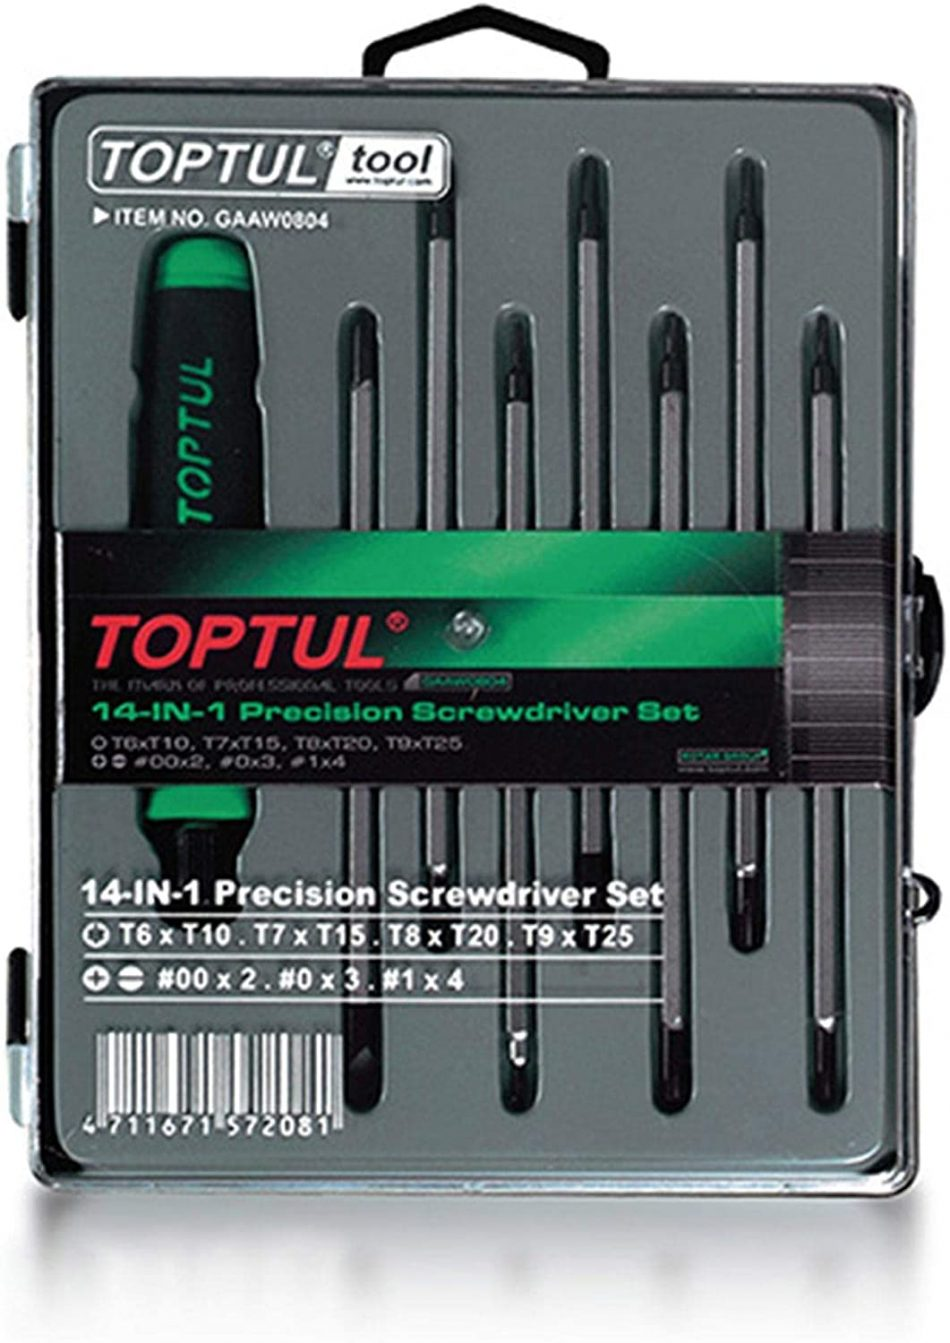 TOPTUL - 8PCS 14-In-1 Precision Screwdriver Set - GAAW0804